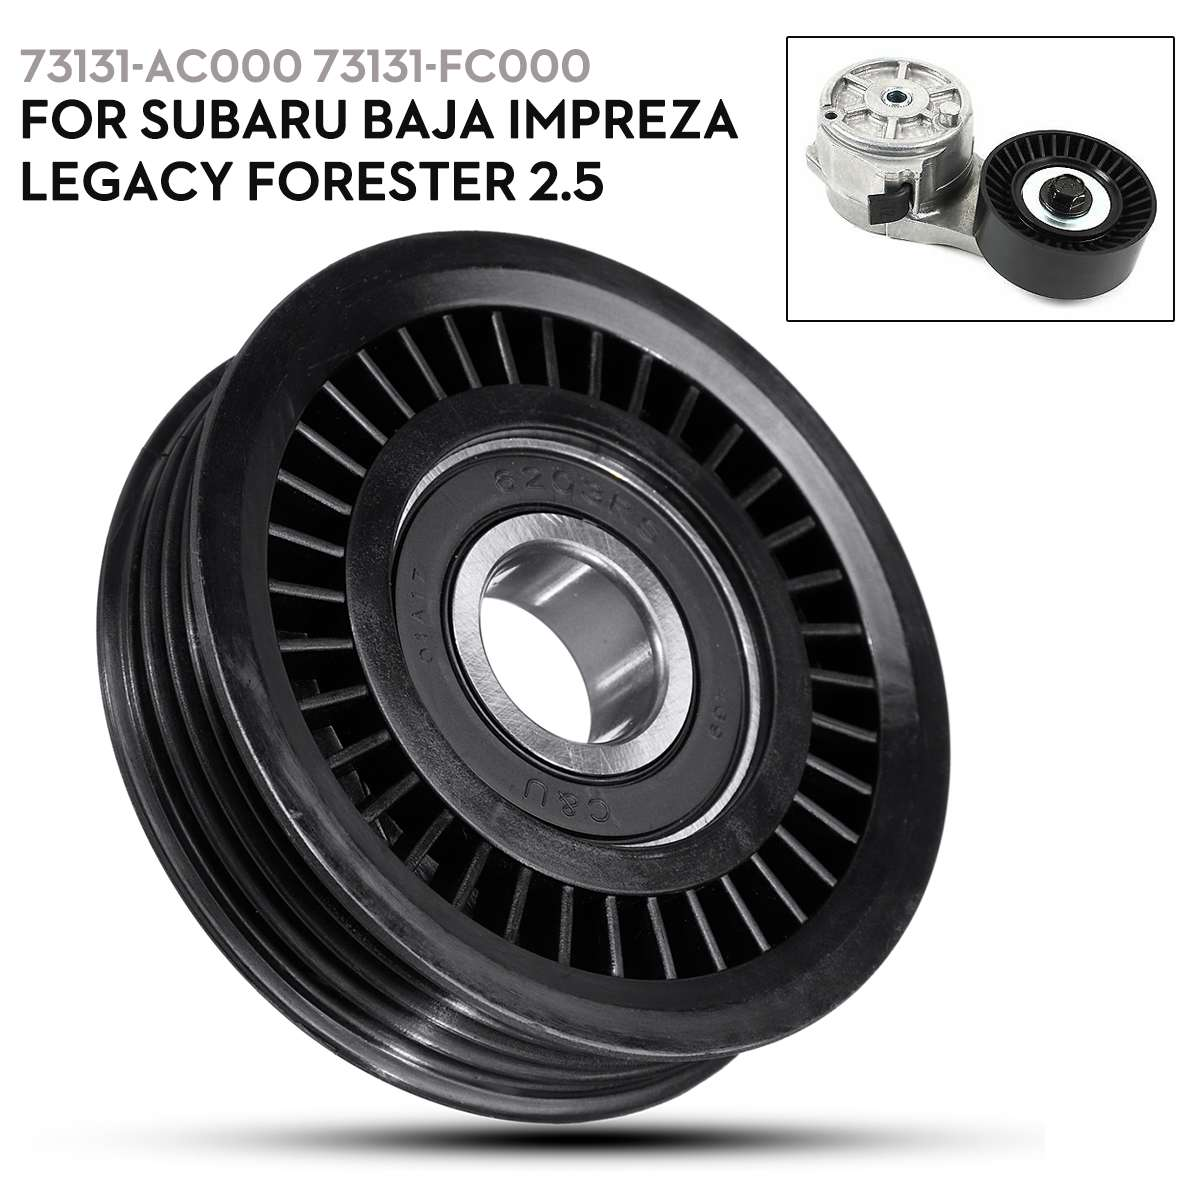 <font><b>Car</b></font> A/C Belt tensioner <font><b>Pulley</b></font> Adjuster 73131AC000 73131FC000 for Subaru Baja Impreza Legacy Forester 2.5 image